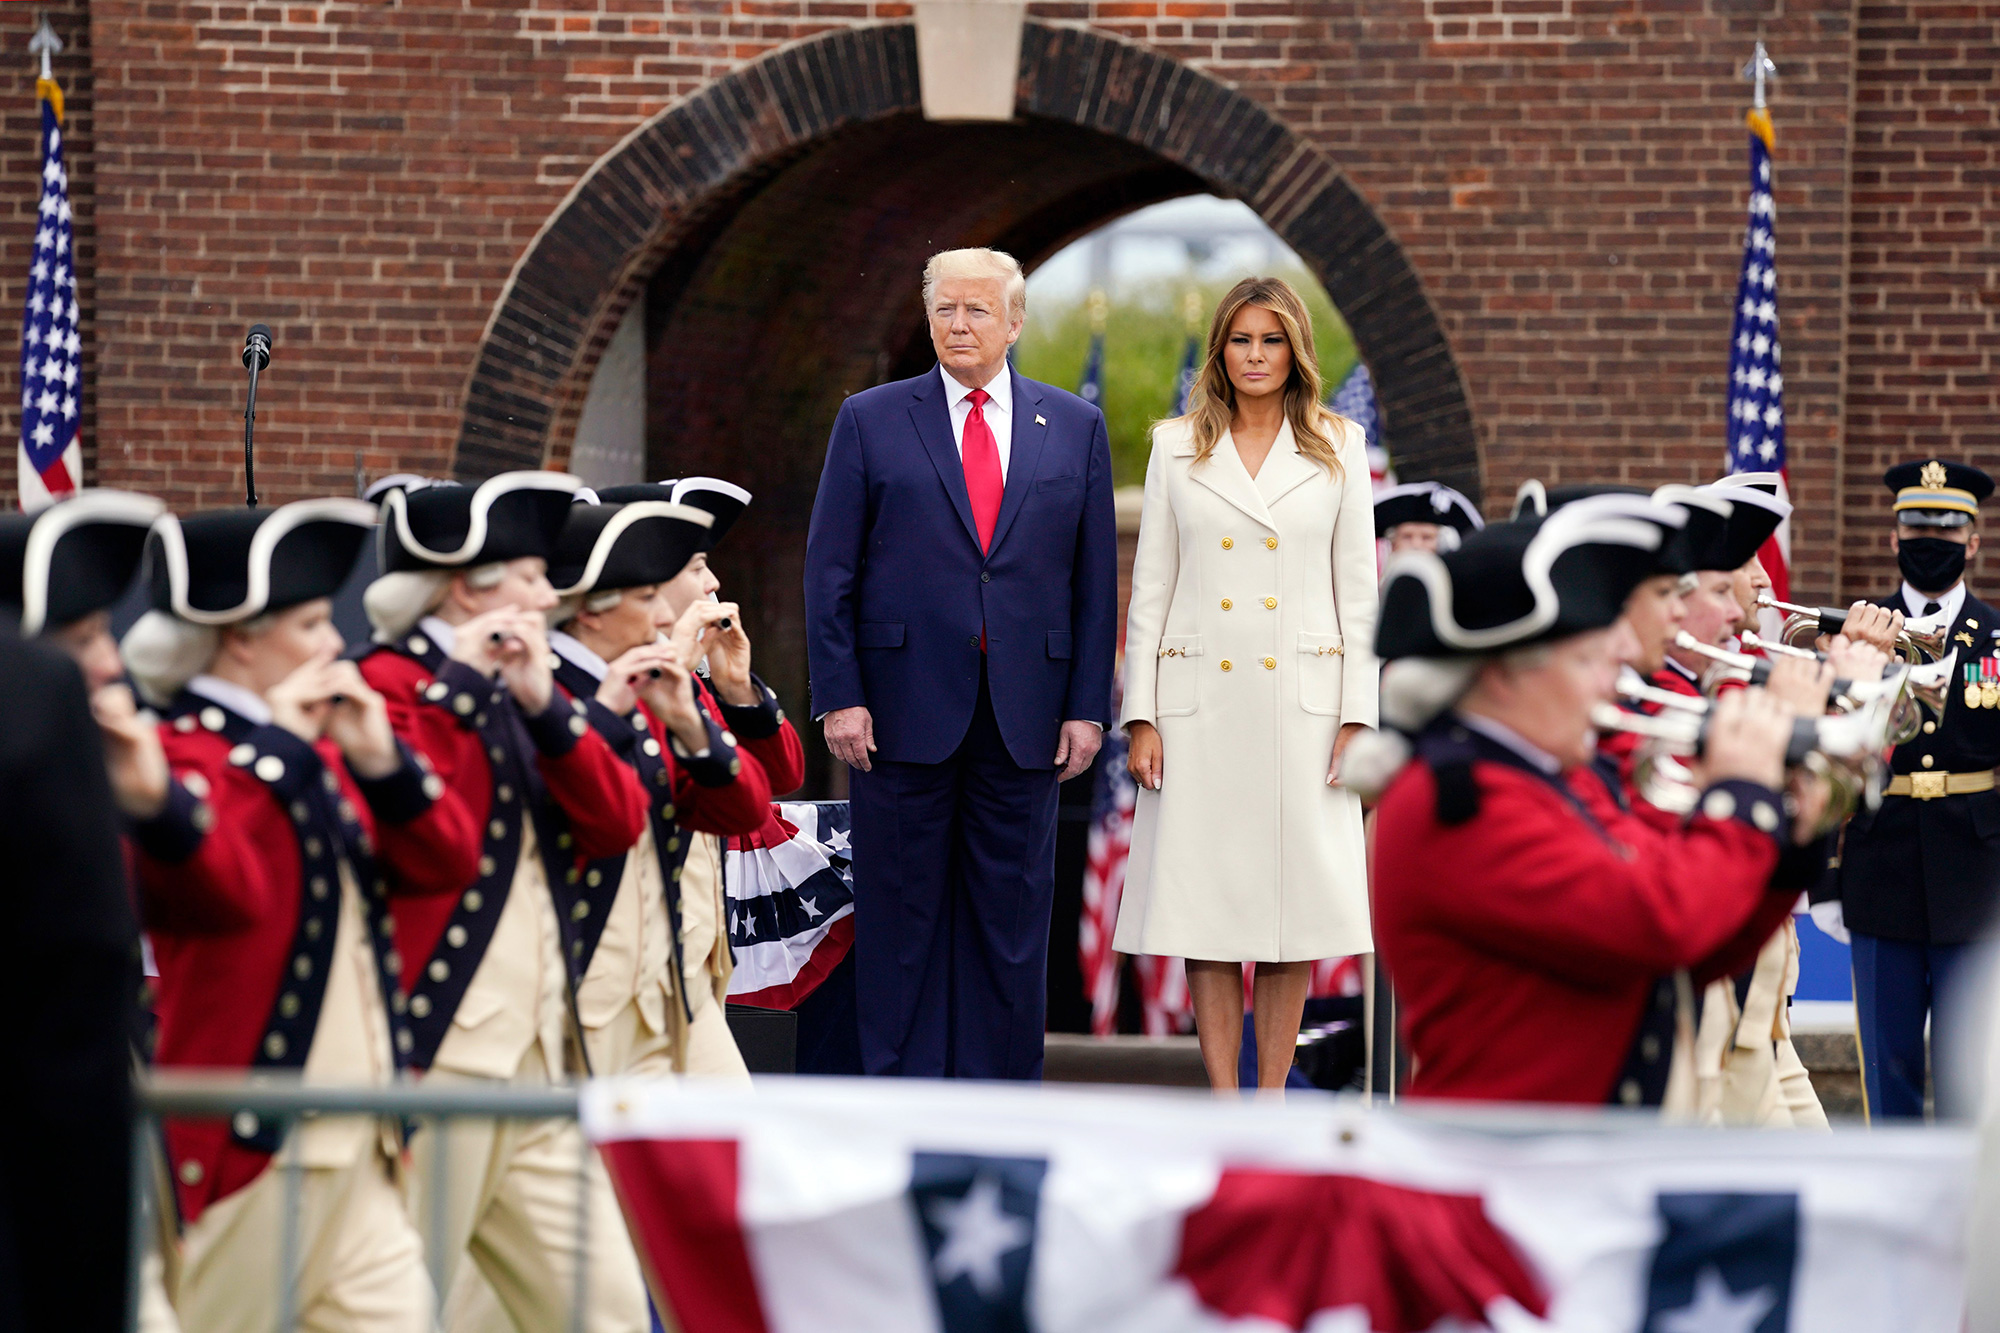 President Donald Trump and first lady Melania Trump participate in a Memorial Day ceremony at Fort McHenry National Monument and Historic Shrine, in Baltimore Virus Outbreak Trump, Baltimore, United States - 25 May 2020